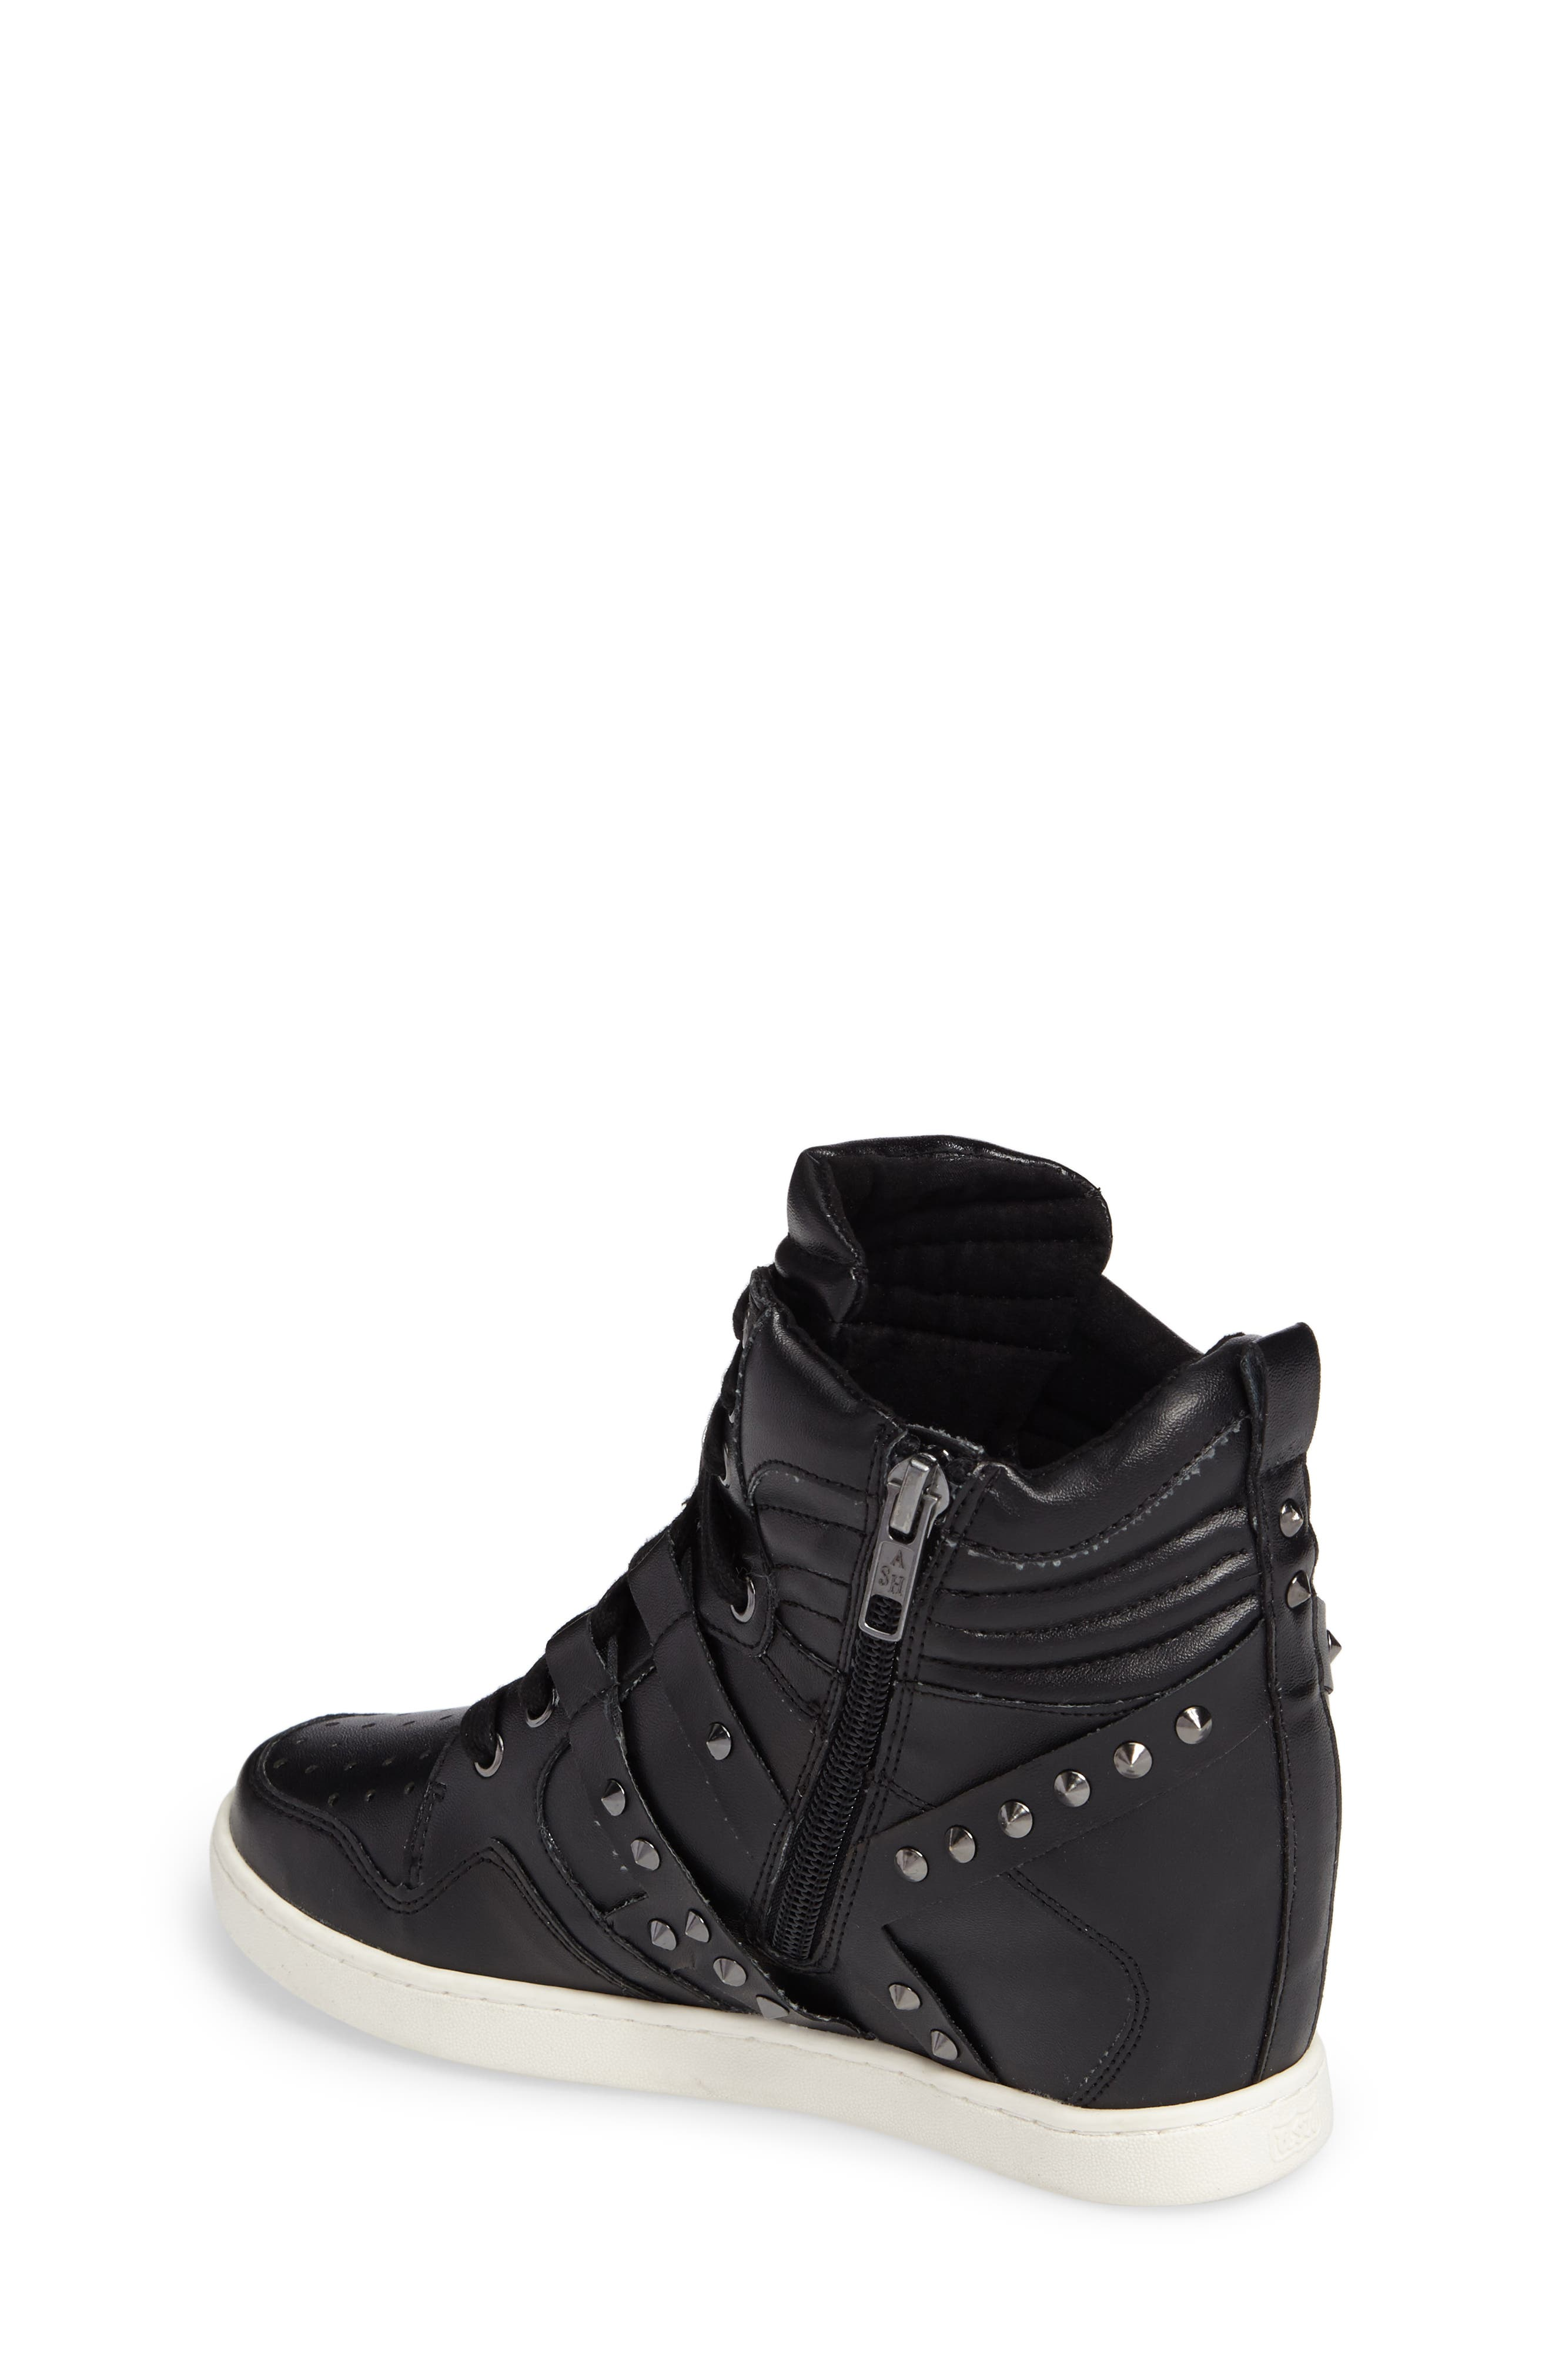 Boogie Chic Studded High Top Sneaker,                             Alternate thumbnail 2, color,                             001